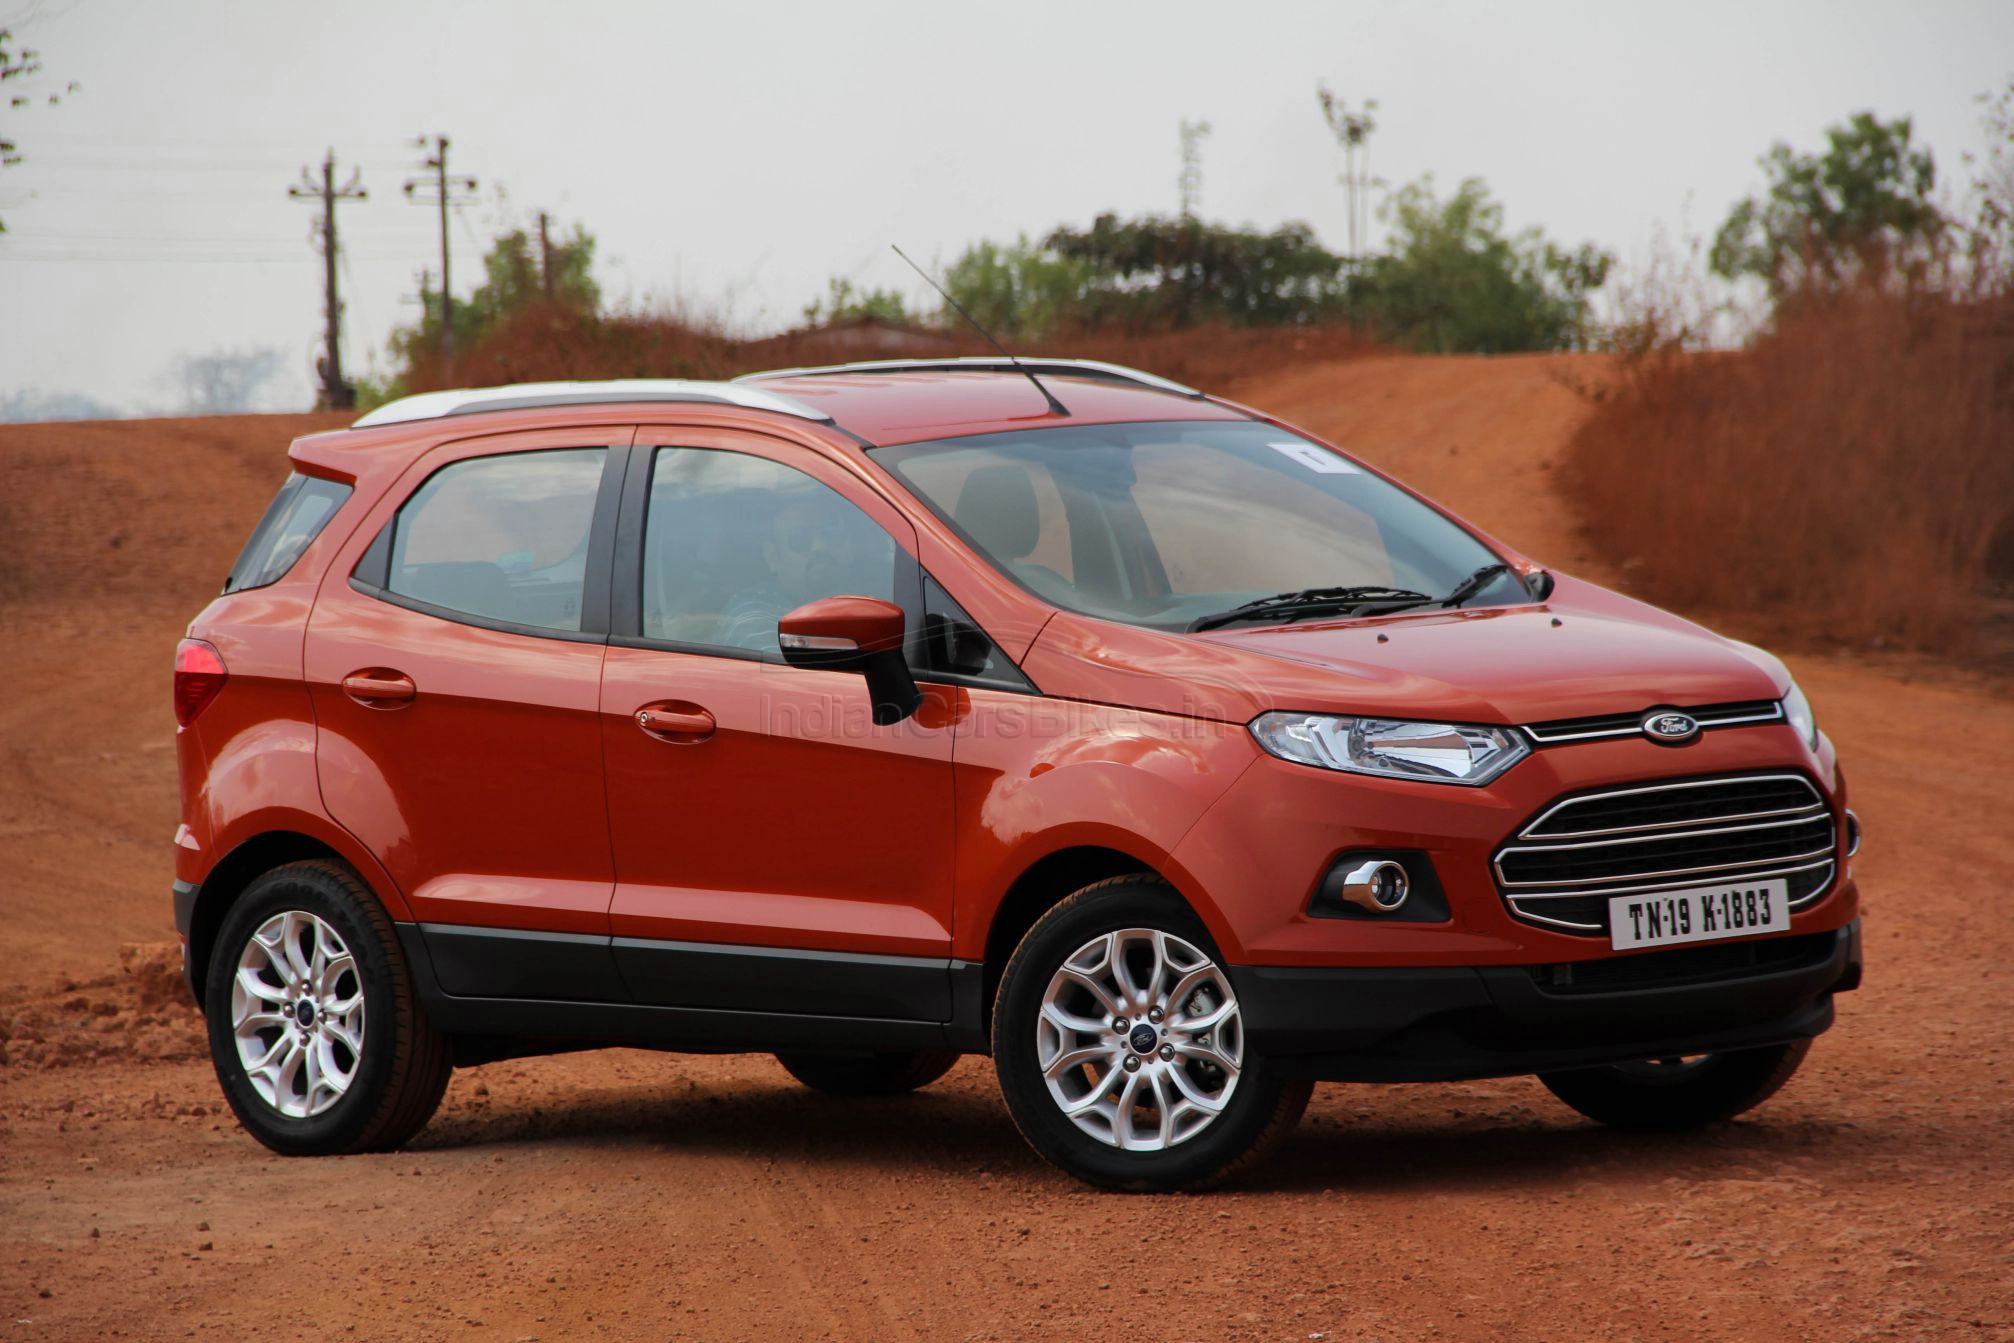 FORD ECOSPORT - Review and photos